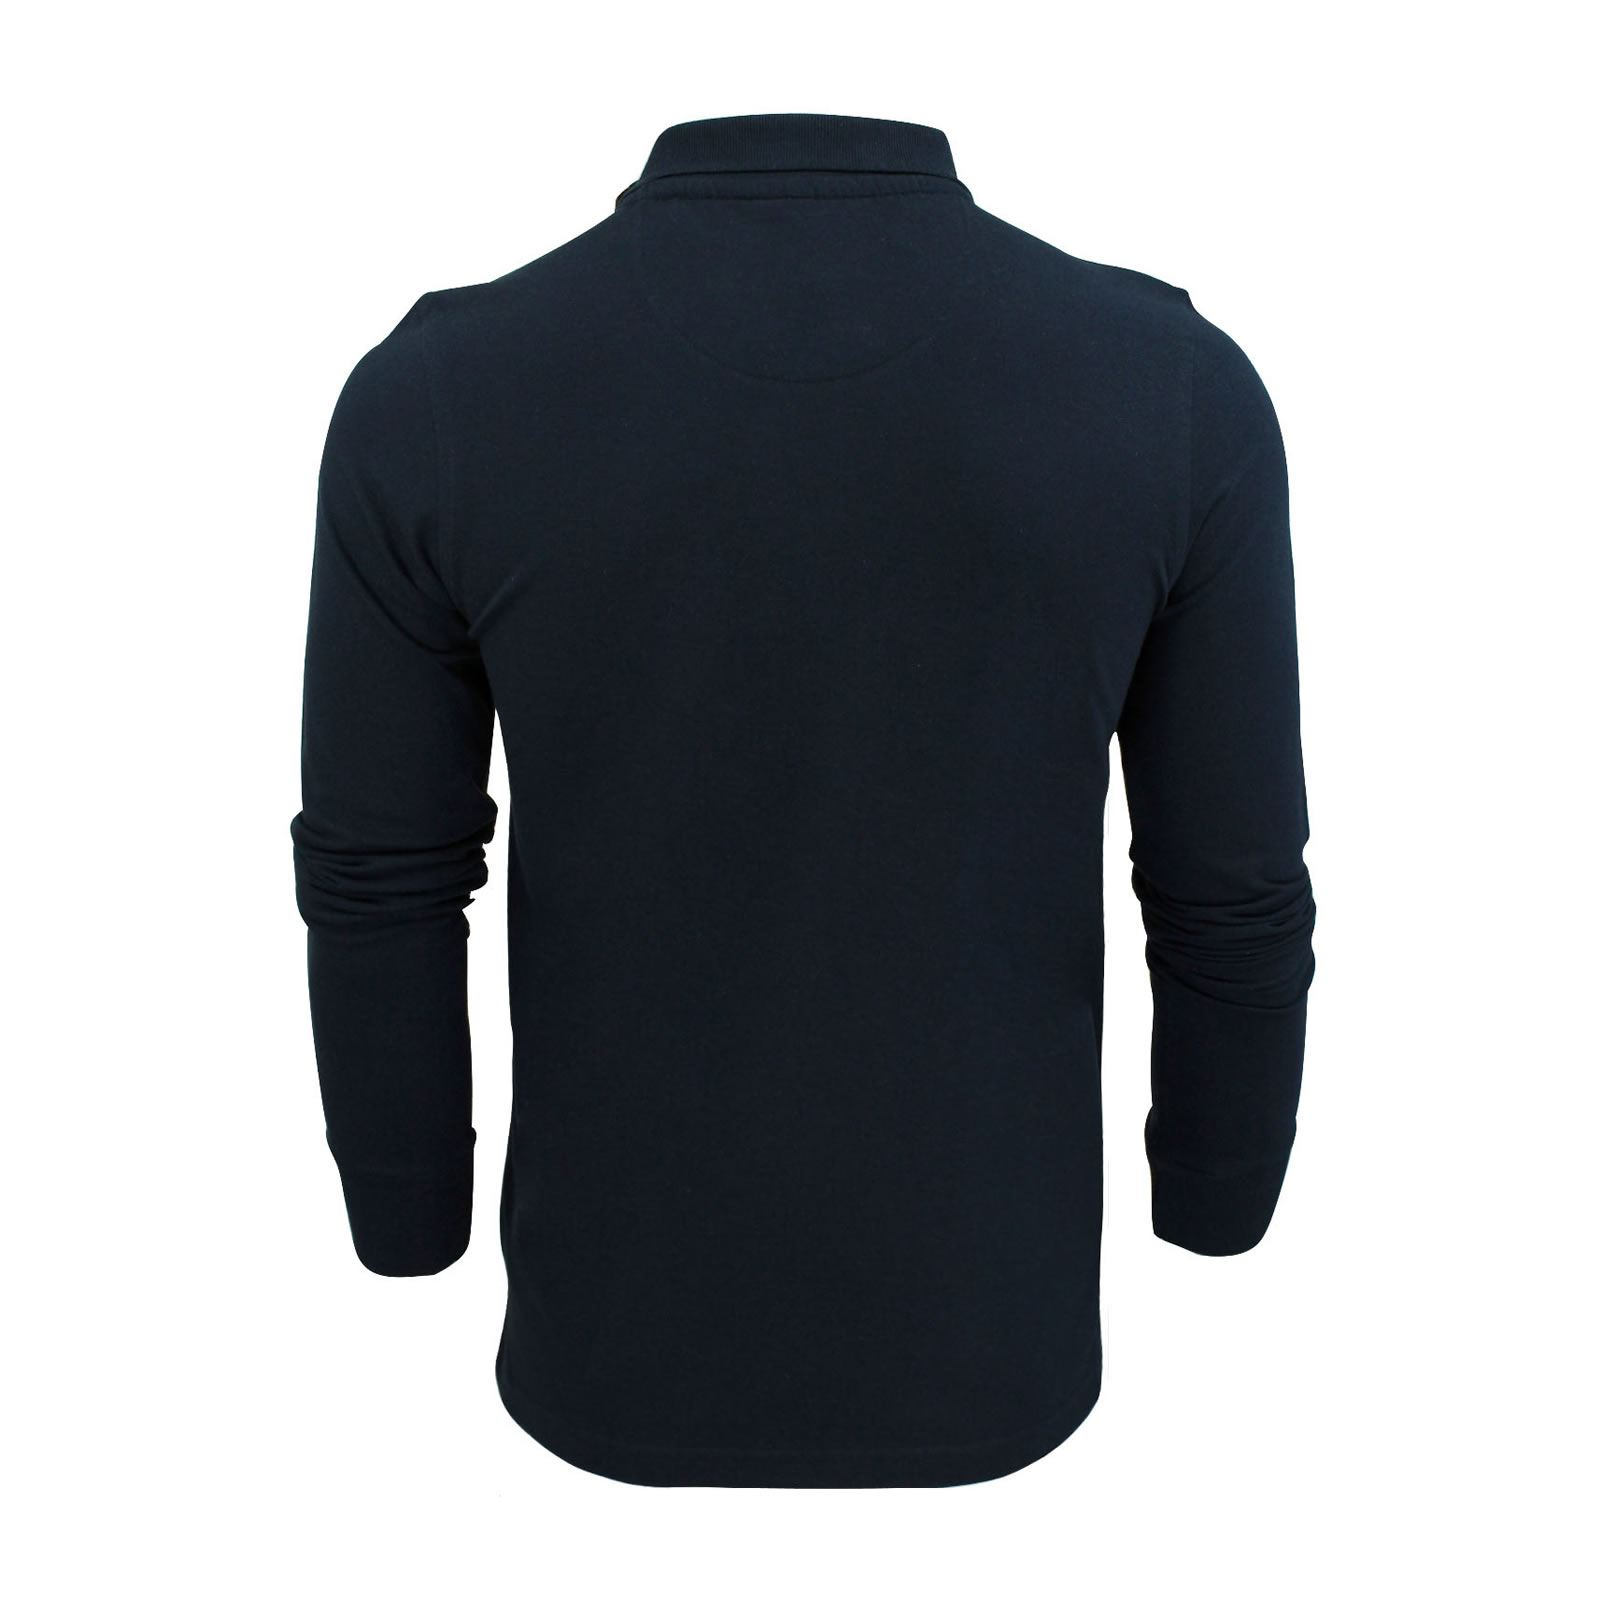 Mens-Polo-T-Shirt-Brave-Soul-Lincoln-Long-Sleeve-Cotton-Pique-Casual-Top thumbnail 11